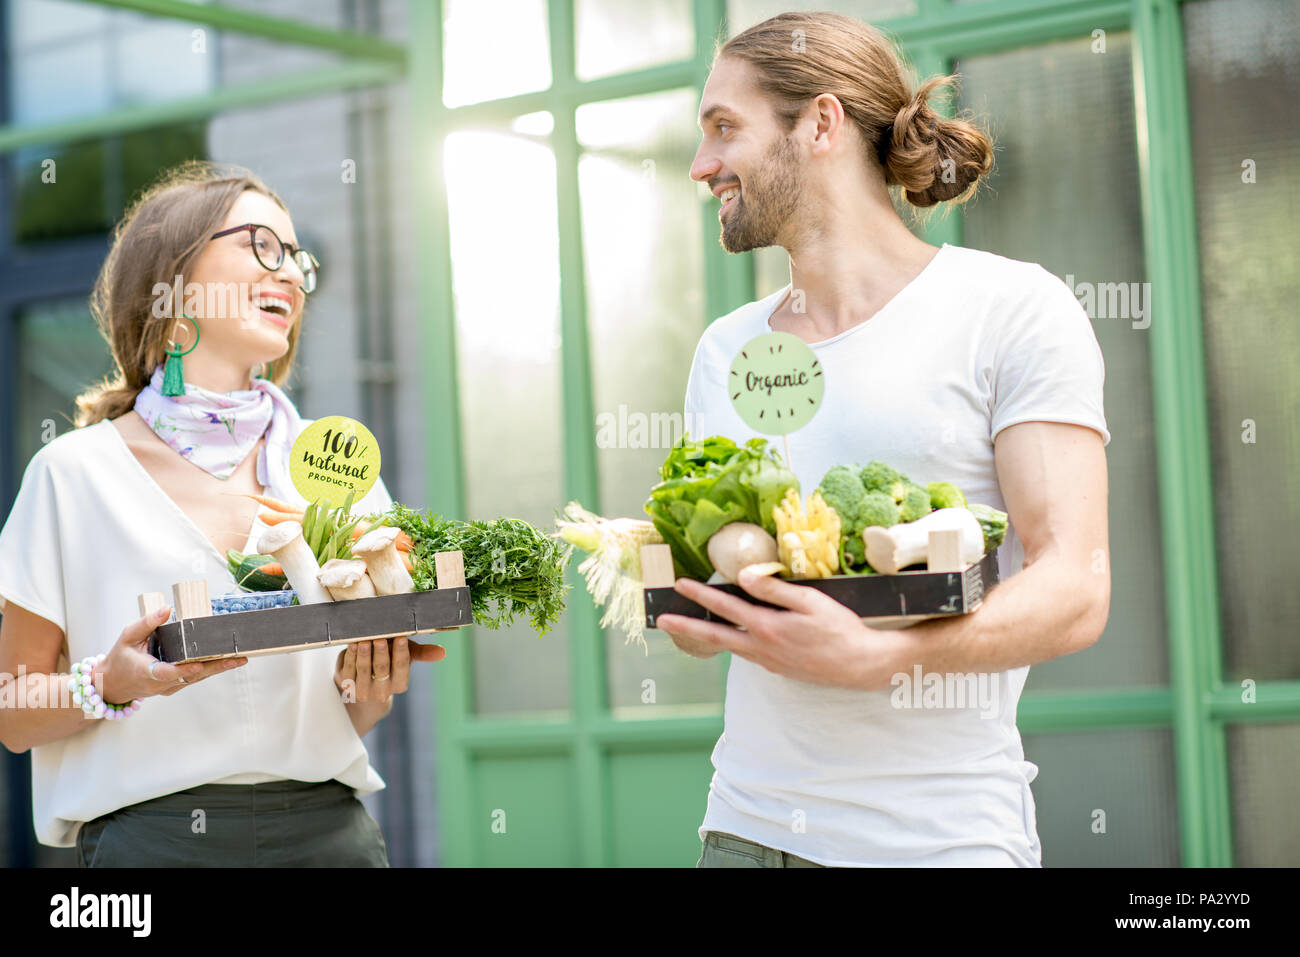 Happy vegetarian couple standing together with boxes full of fresh raw vegetables outdoors on the green background - Stock Image